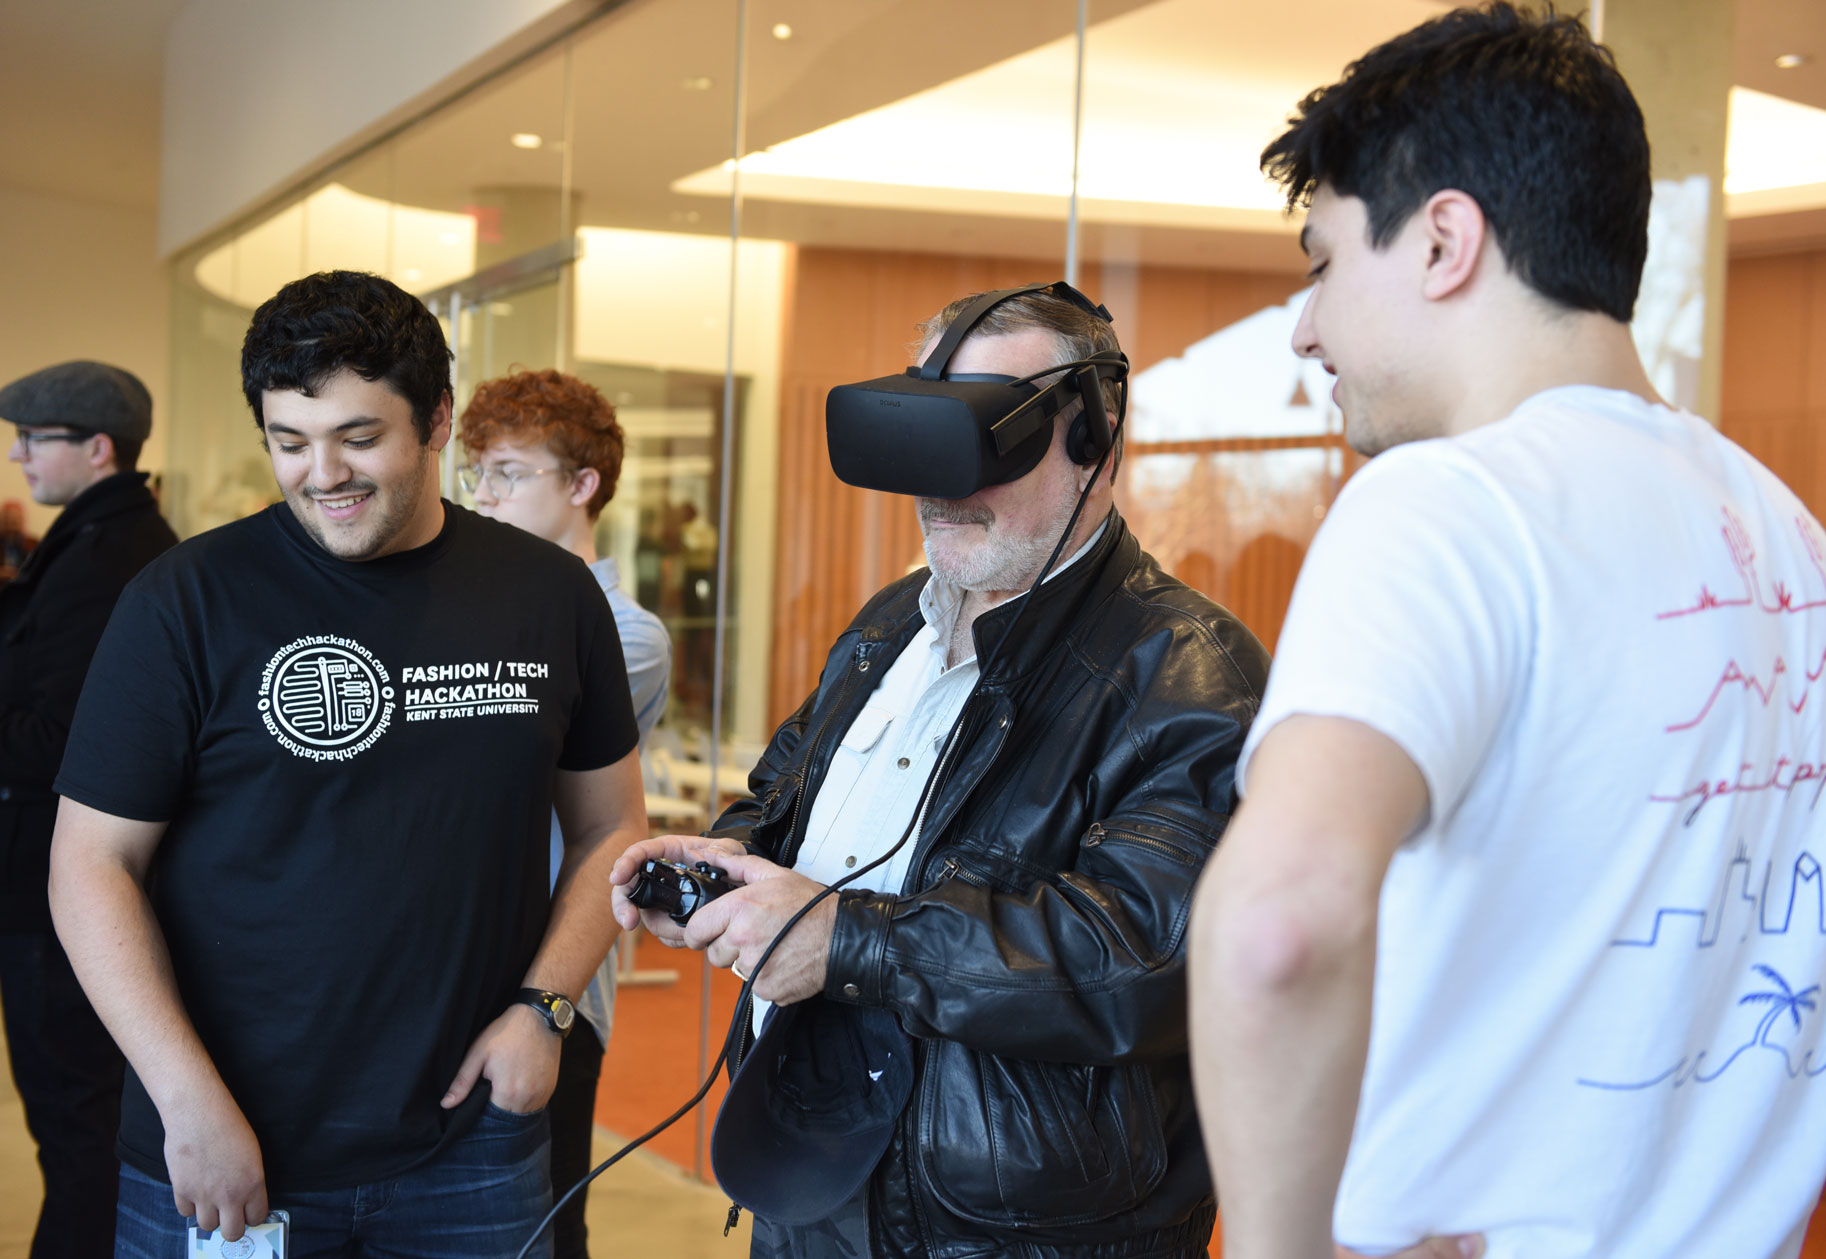 Hackathon Judge Testing out a group's virtual reality project